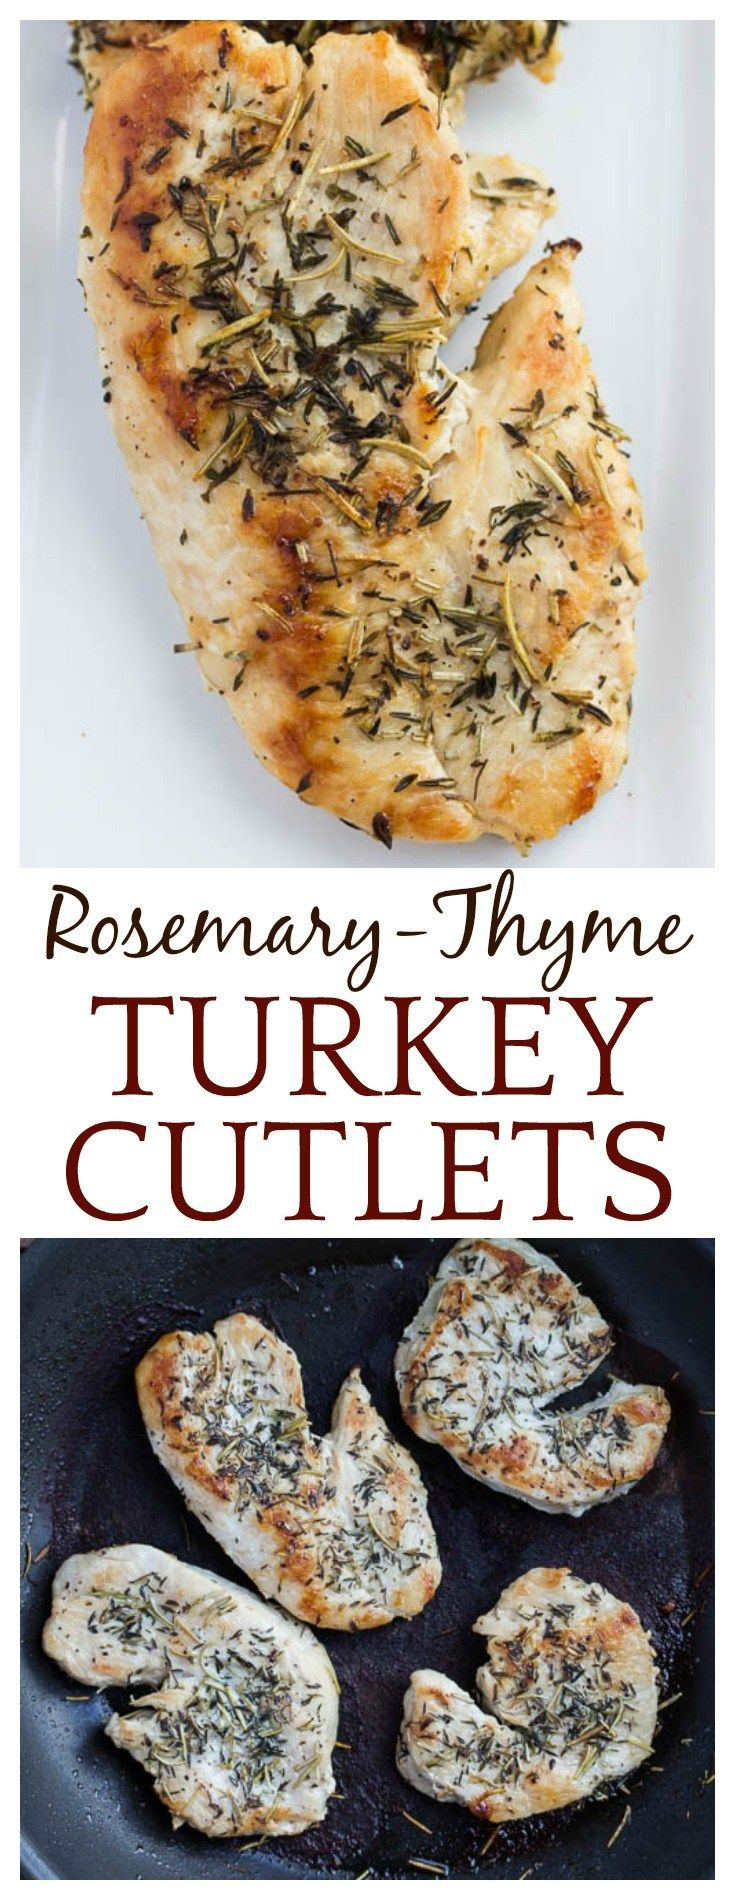 Who says turkey is only for Thanksgiving Day? This recipe for Rosemary-Thyme Turkey Cutlets makes an easy dinner for weeknights, but also works great for company. This recipe naturally gluten free and low carb, and kids love it too! It's family friendly a